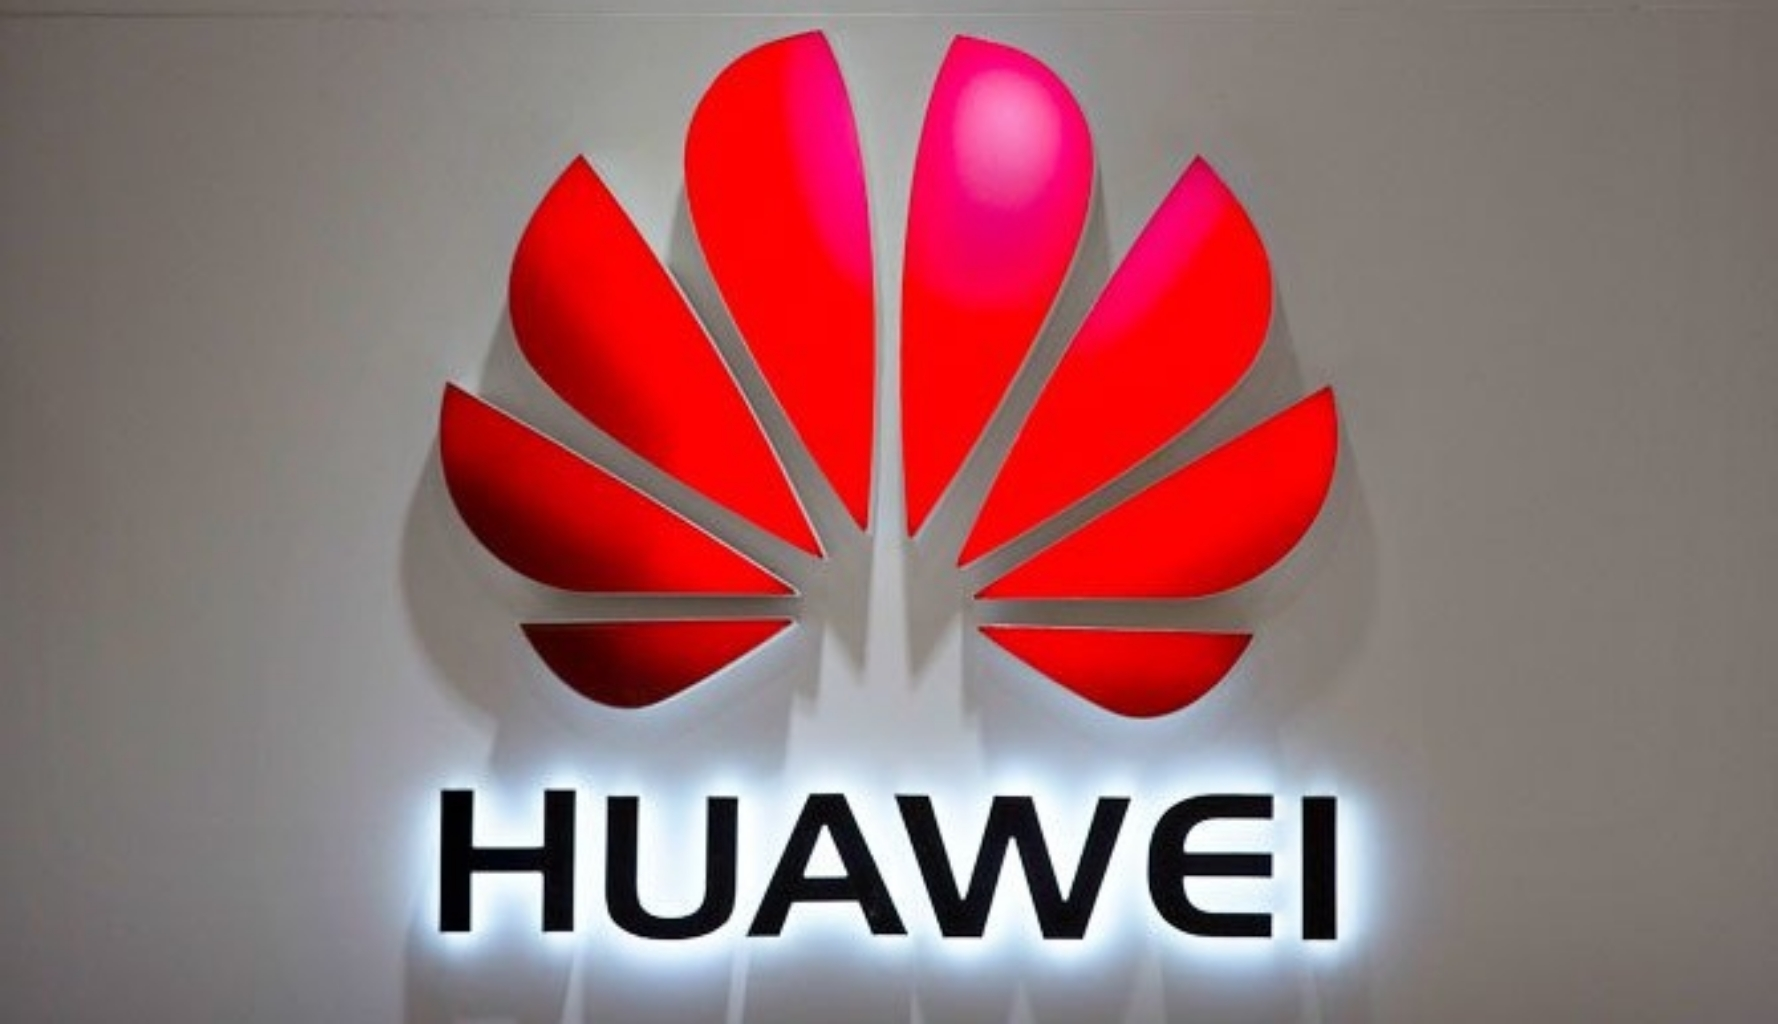 Huawei Smartphone Banned From Google Play Store Access, App